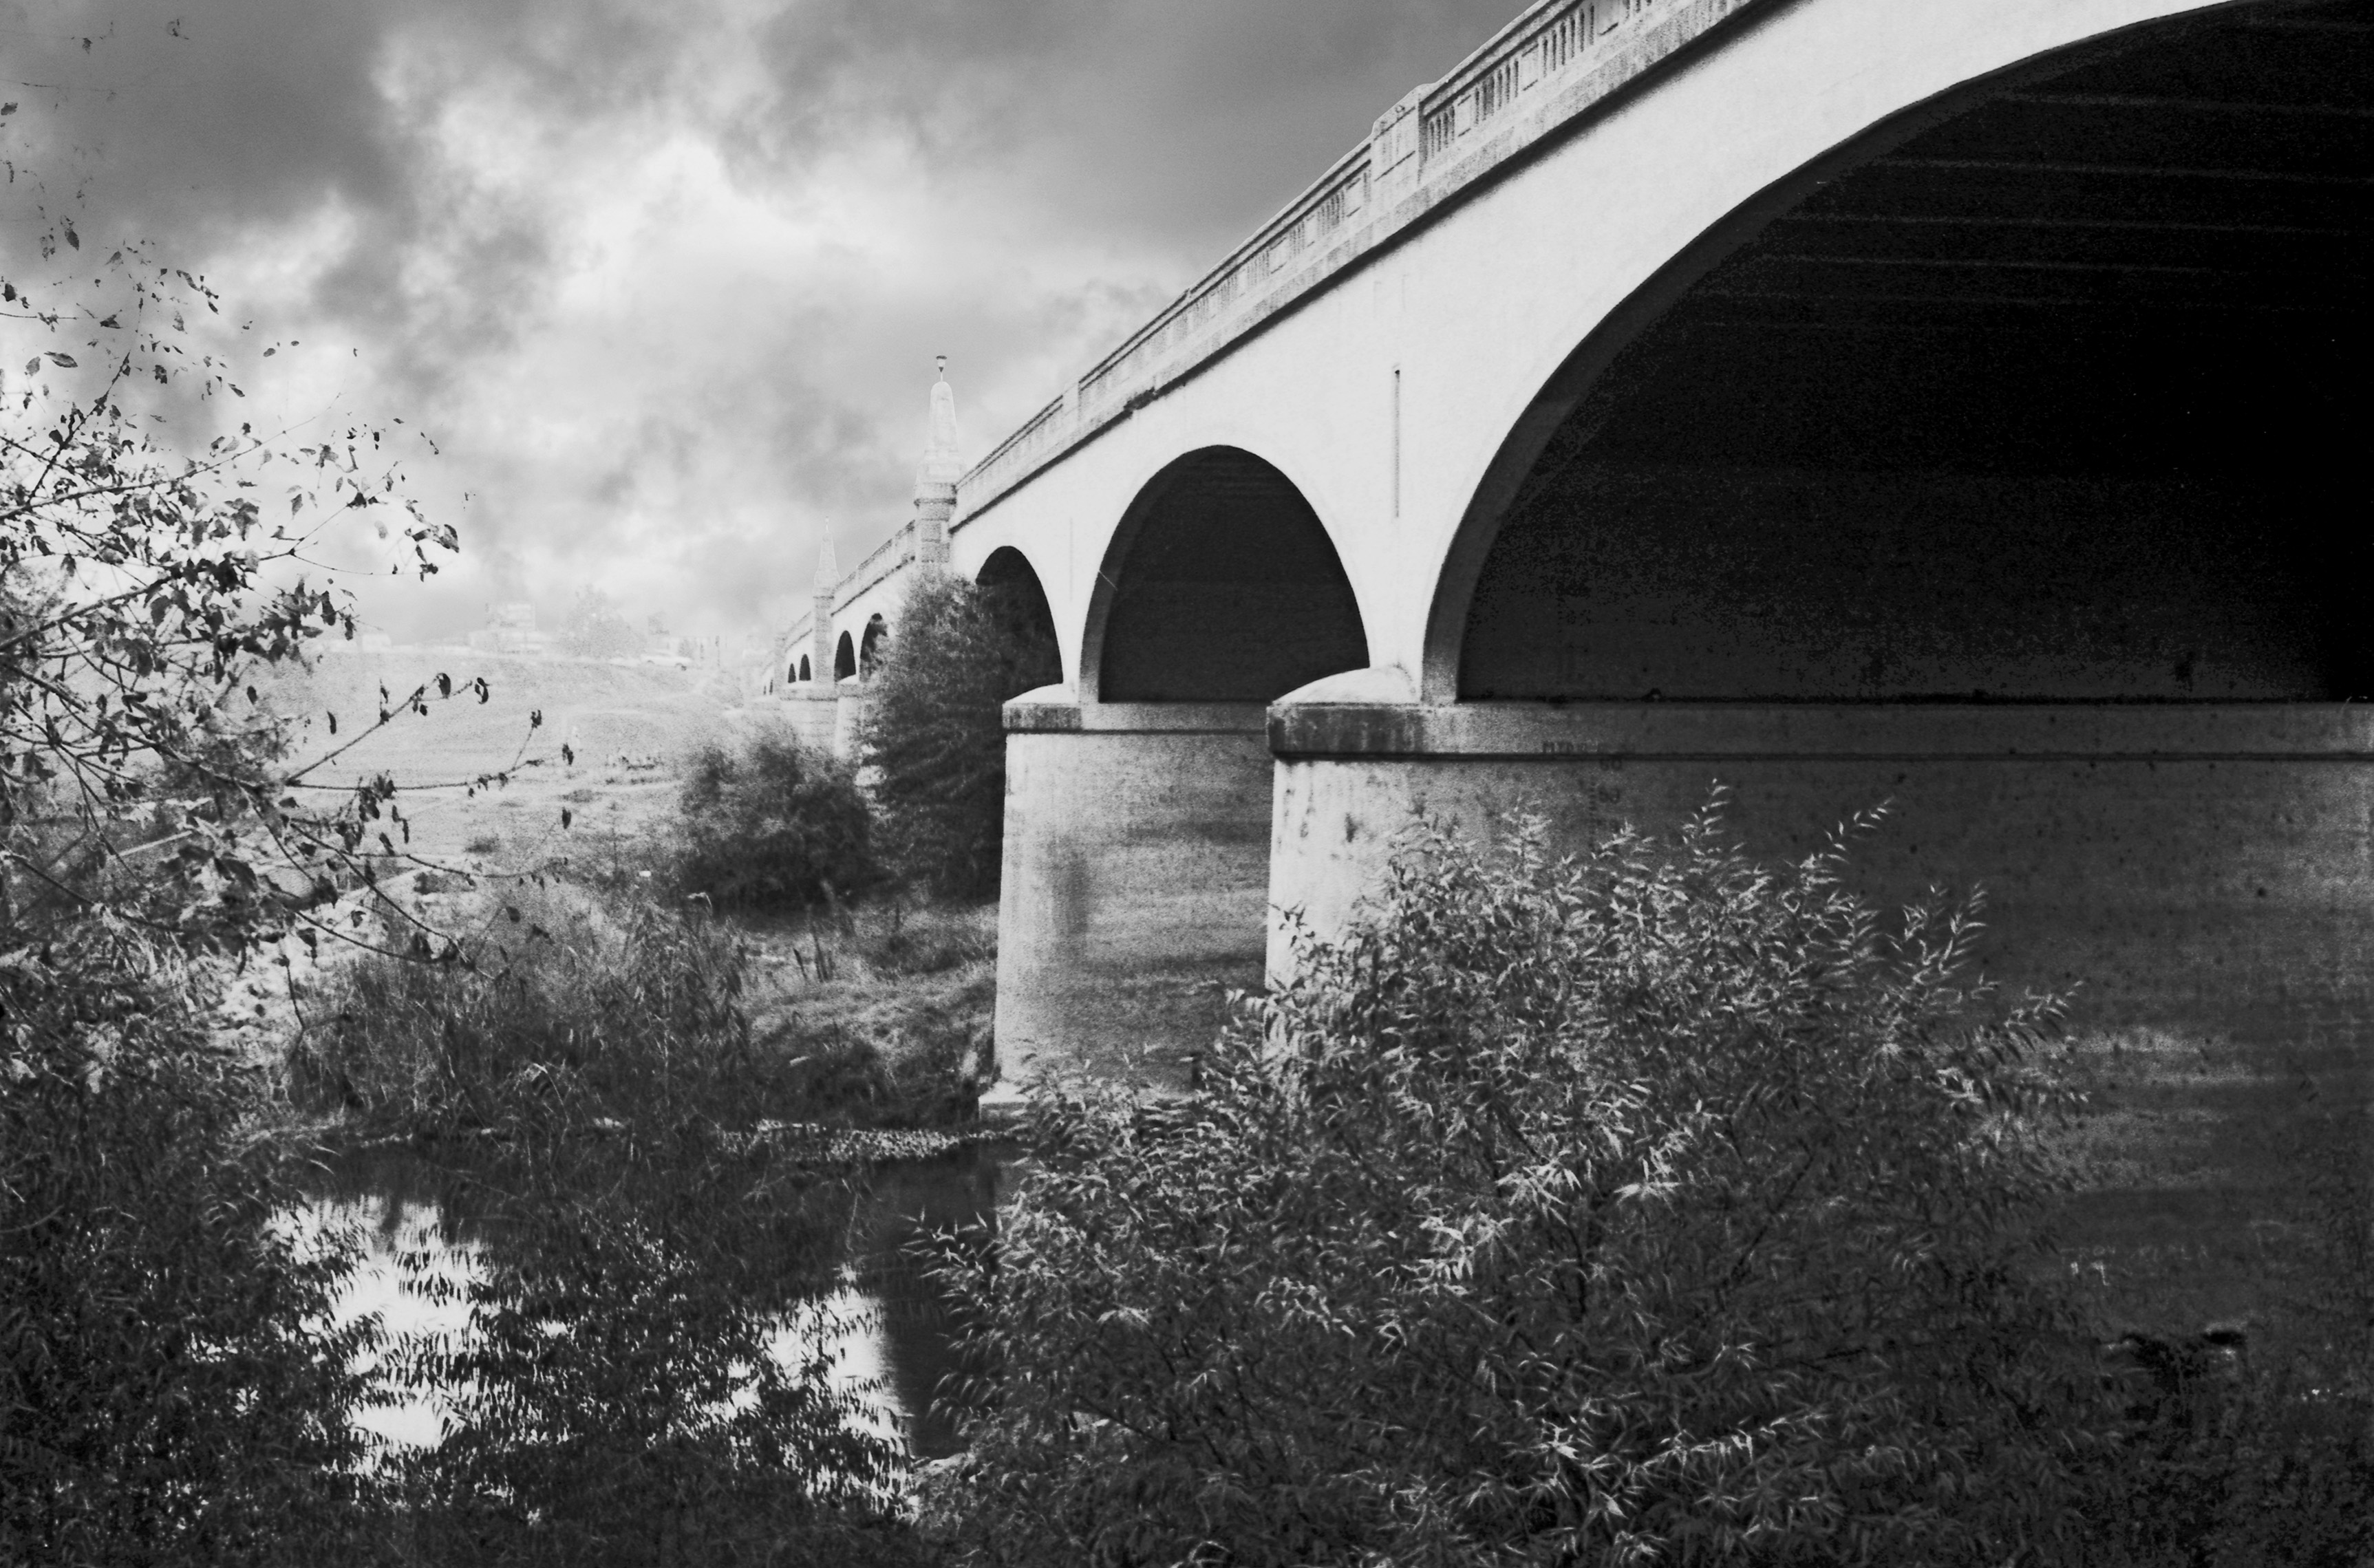 7th St. Bridge, Modesto, CA film